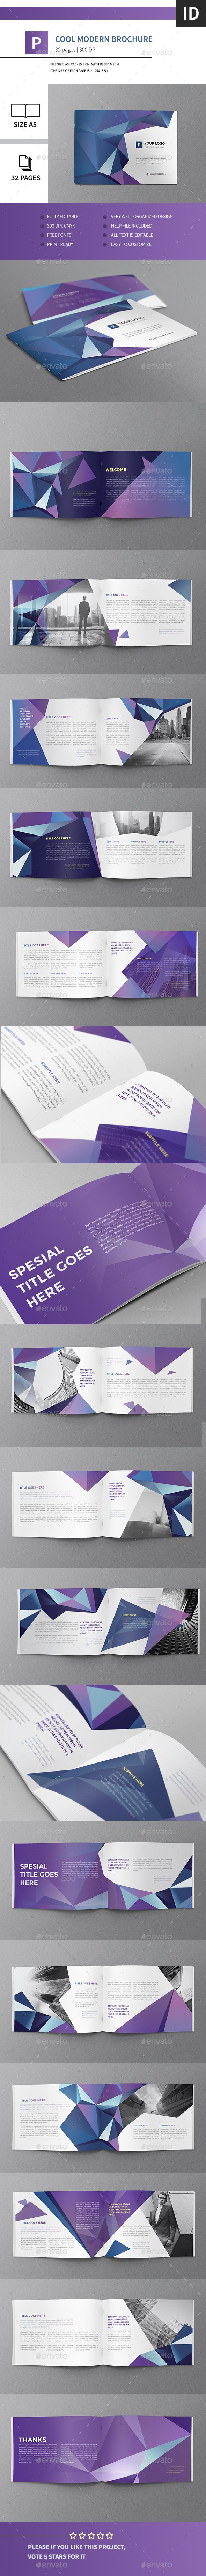 Cool Modern Brochure 32 Pages A5 Horizontal Template InDesign INDD #design Download: http://graphicriver.net/item/cool-modern-brochure-32-pages-a5-horizontal/13653304?ref=ksioks